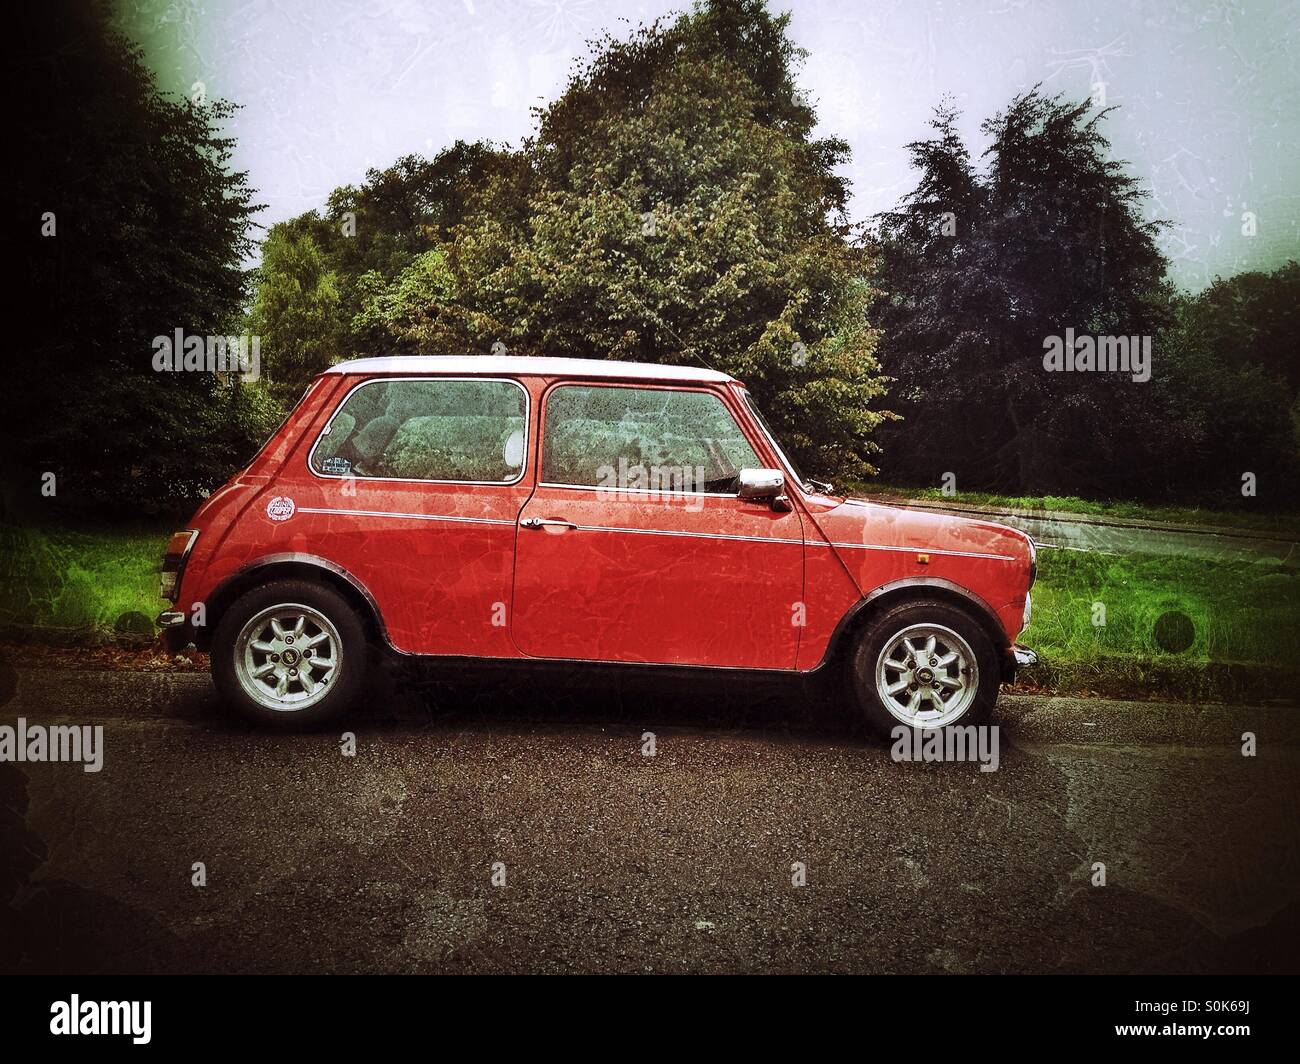 Red Mini car - Stock Image